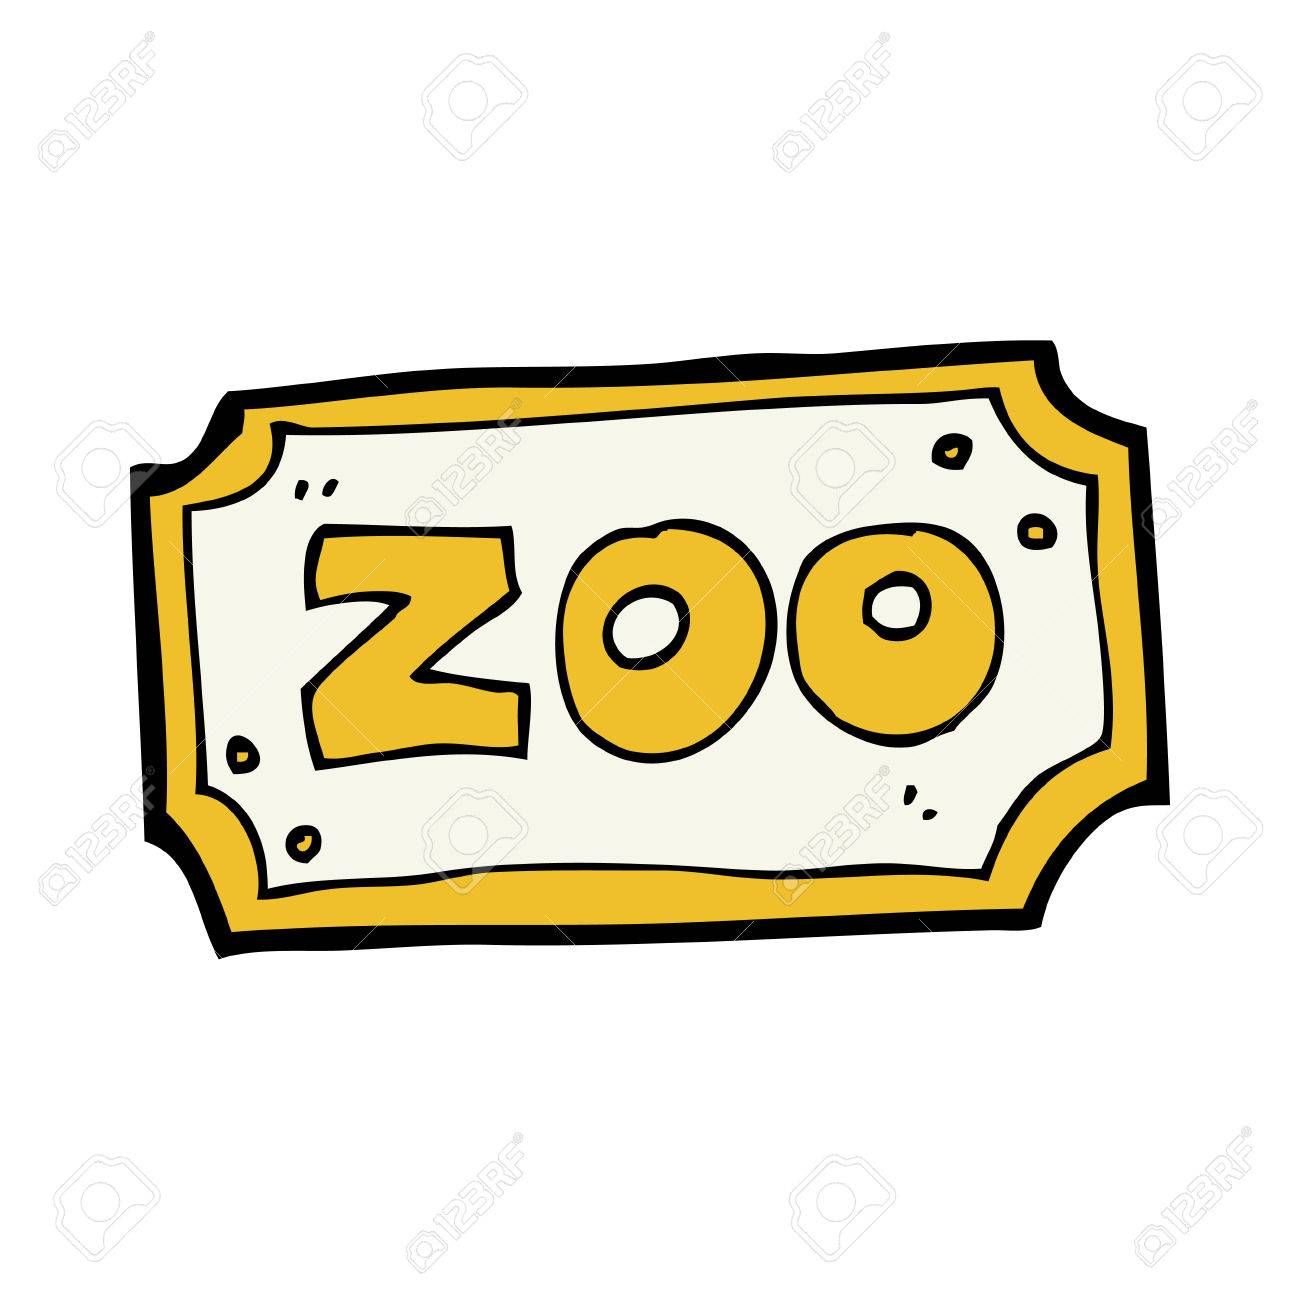 png black and white download Cartoon station . Zoo sign clipart.